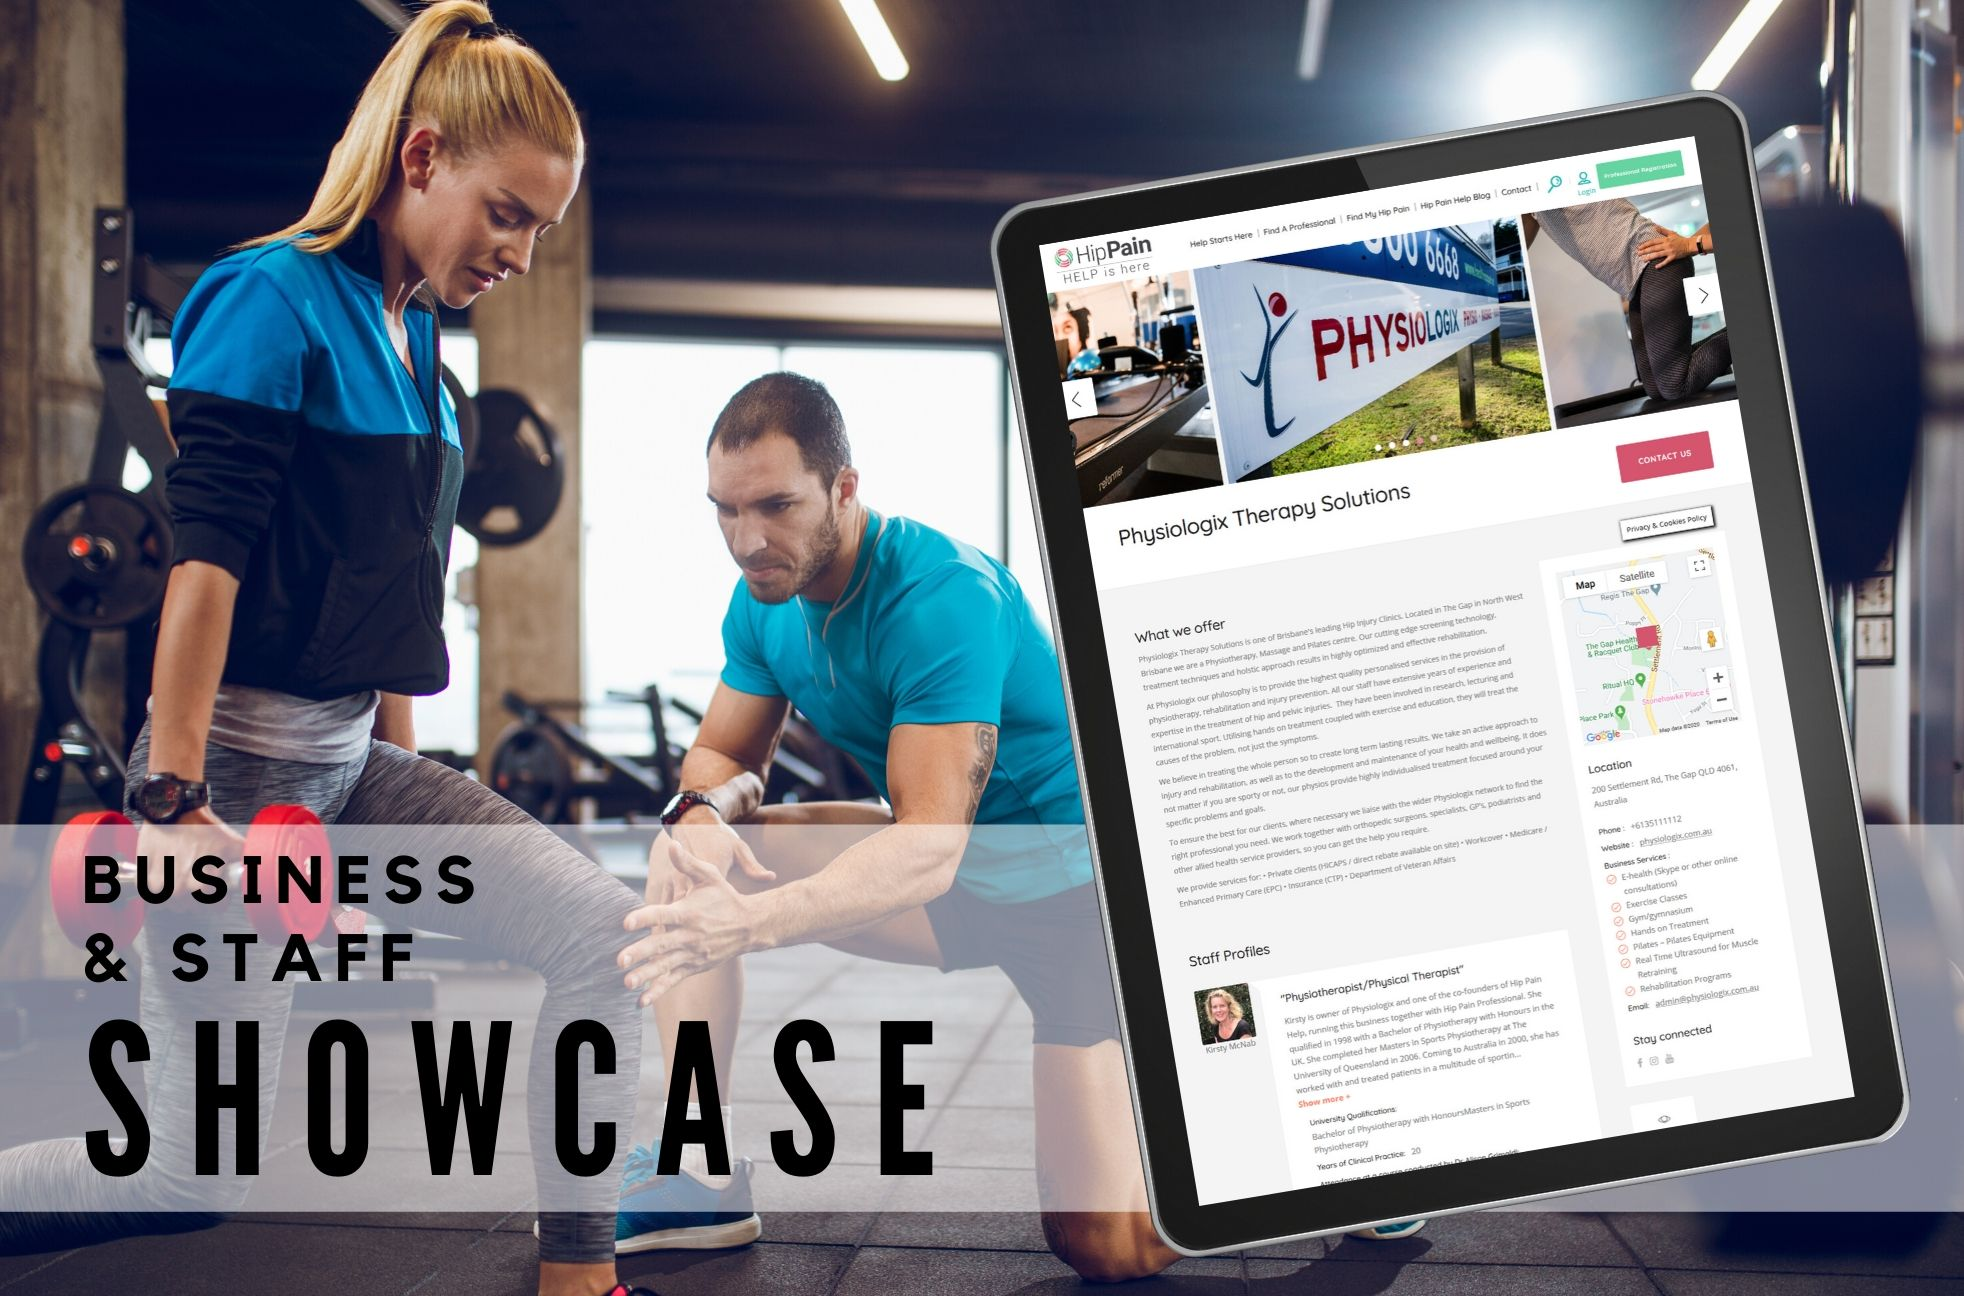 Grow your physiotherapy business